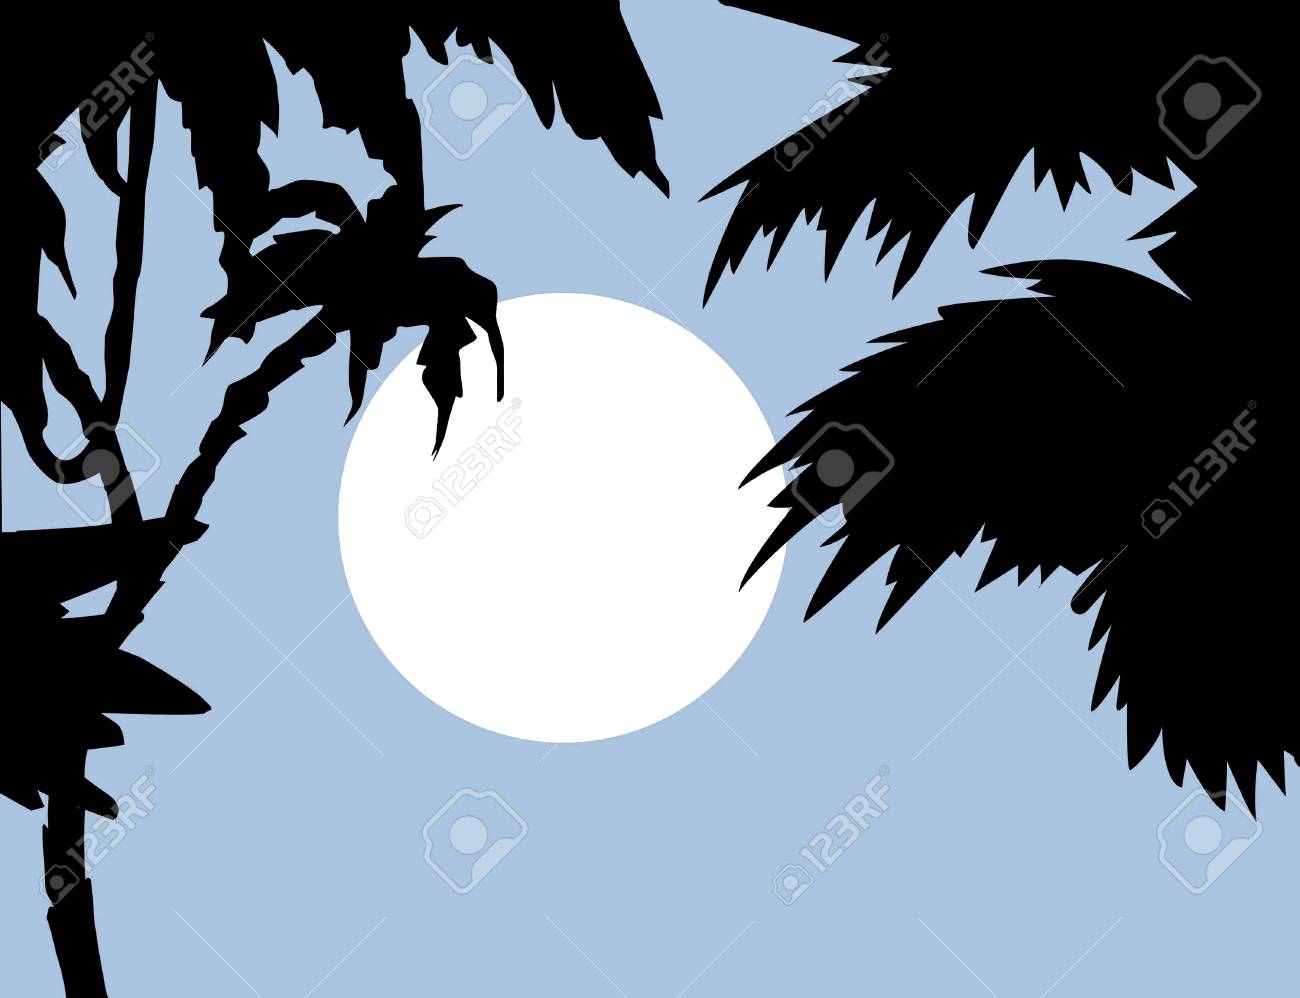 tropical landscape with palm on foregrounds, vector illustration Stock Vector - 13804026